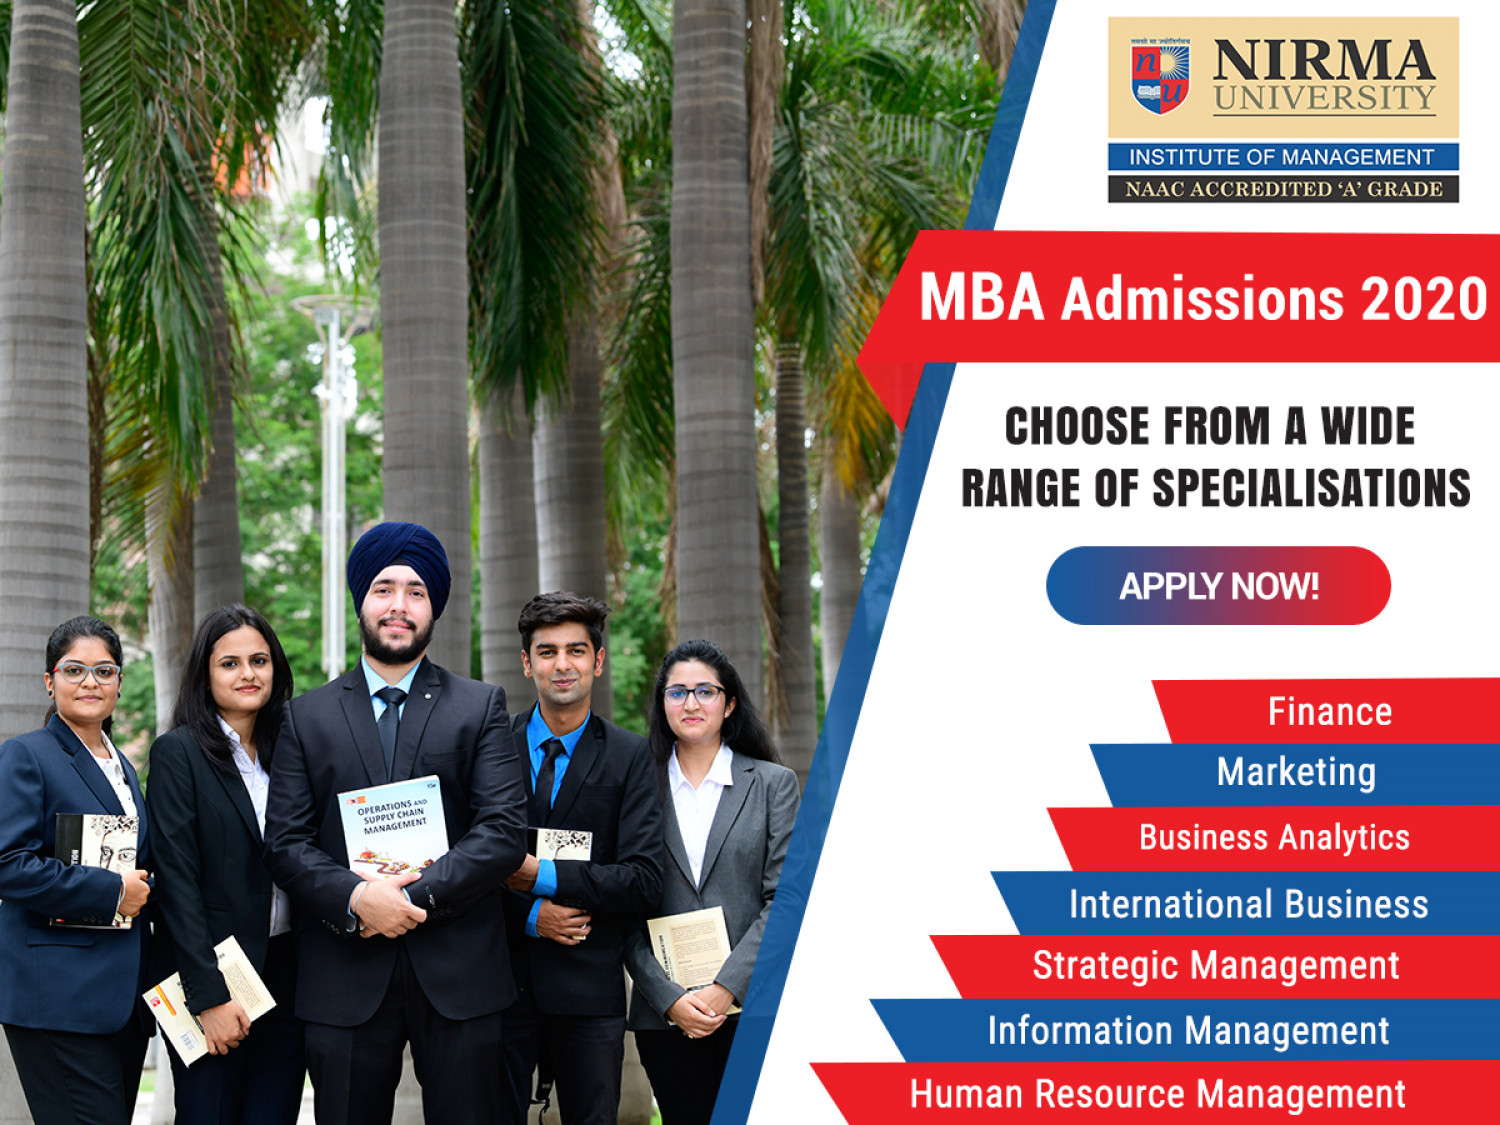 MBA Admissions 2020 Infographic